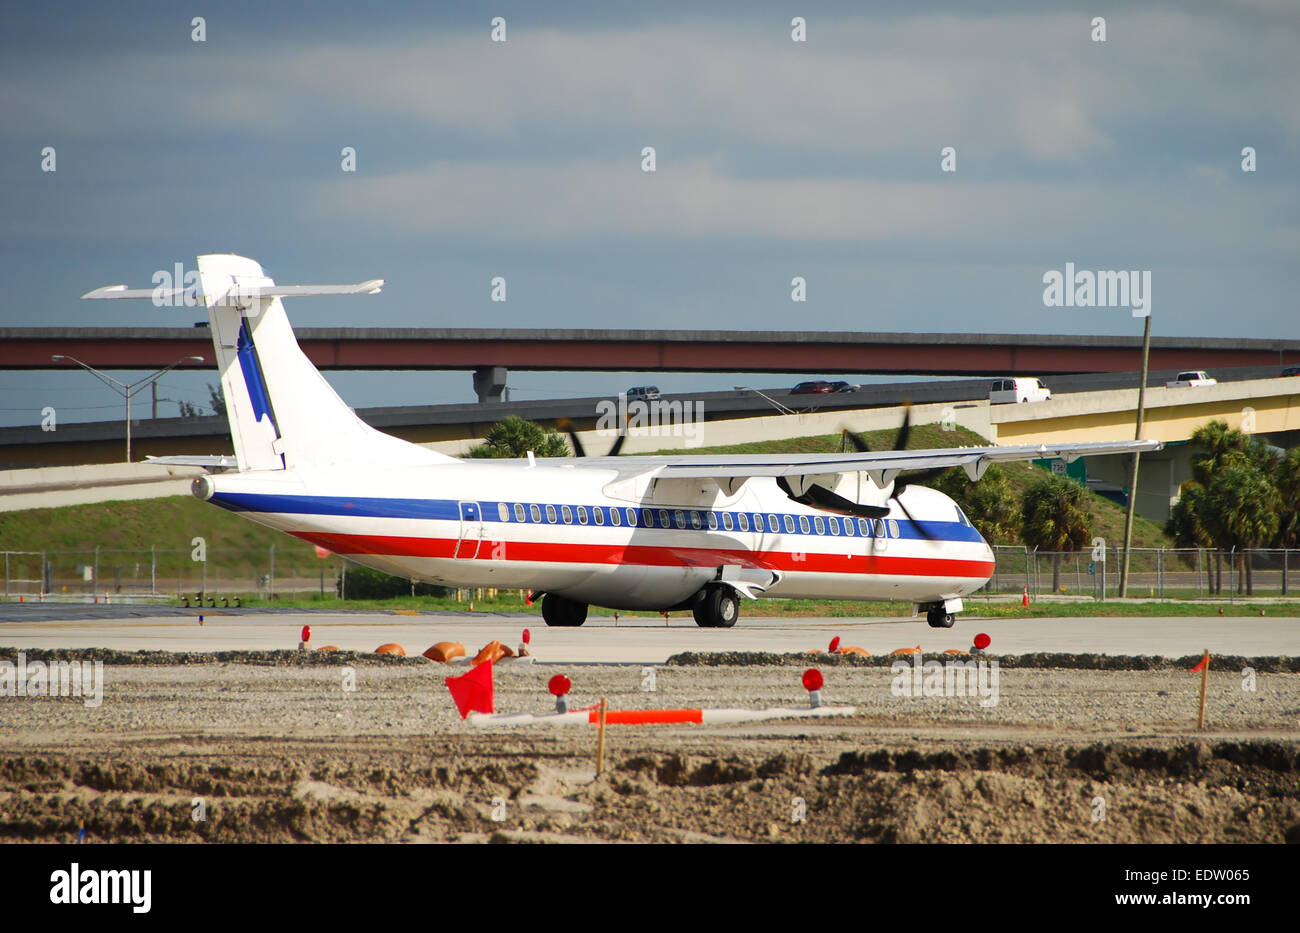 Turboprop airplane ATR-72 preparing for takeoff - Stock Image